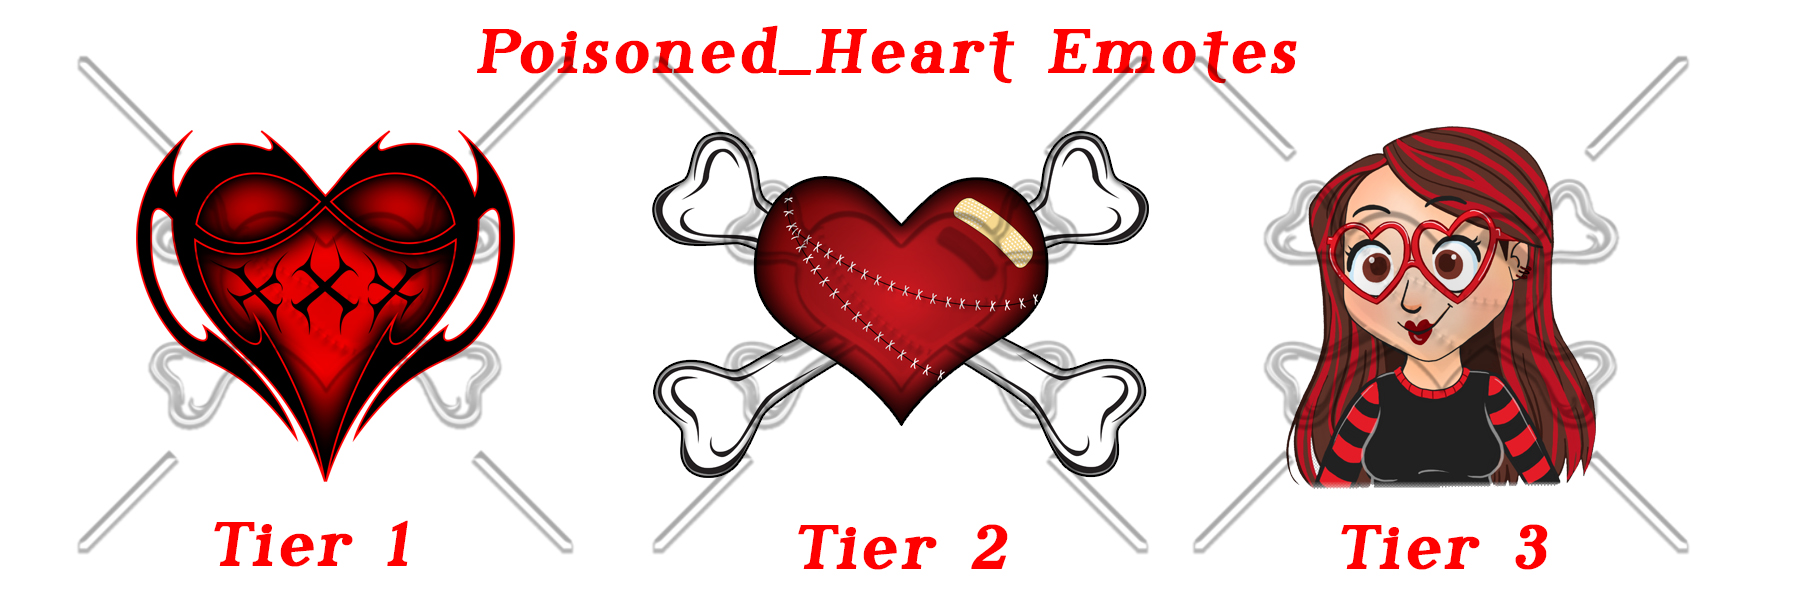 Poisoned_Heart Emotes